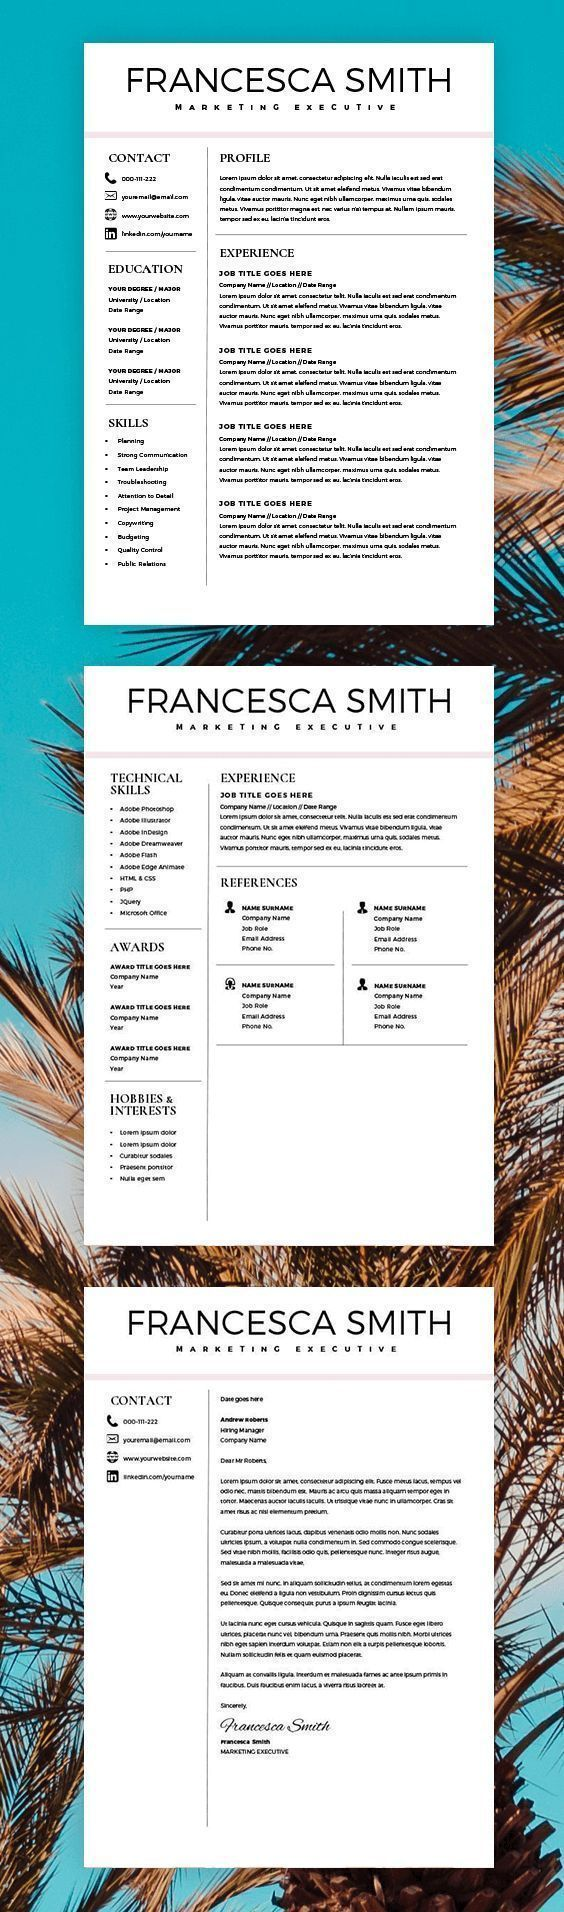 Fashion Resume Templates Feminine Resume  Cv Design  Resume Download  Ms Word Resume For